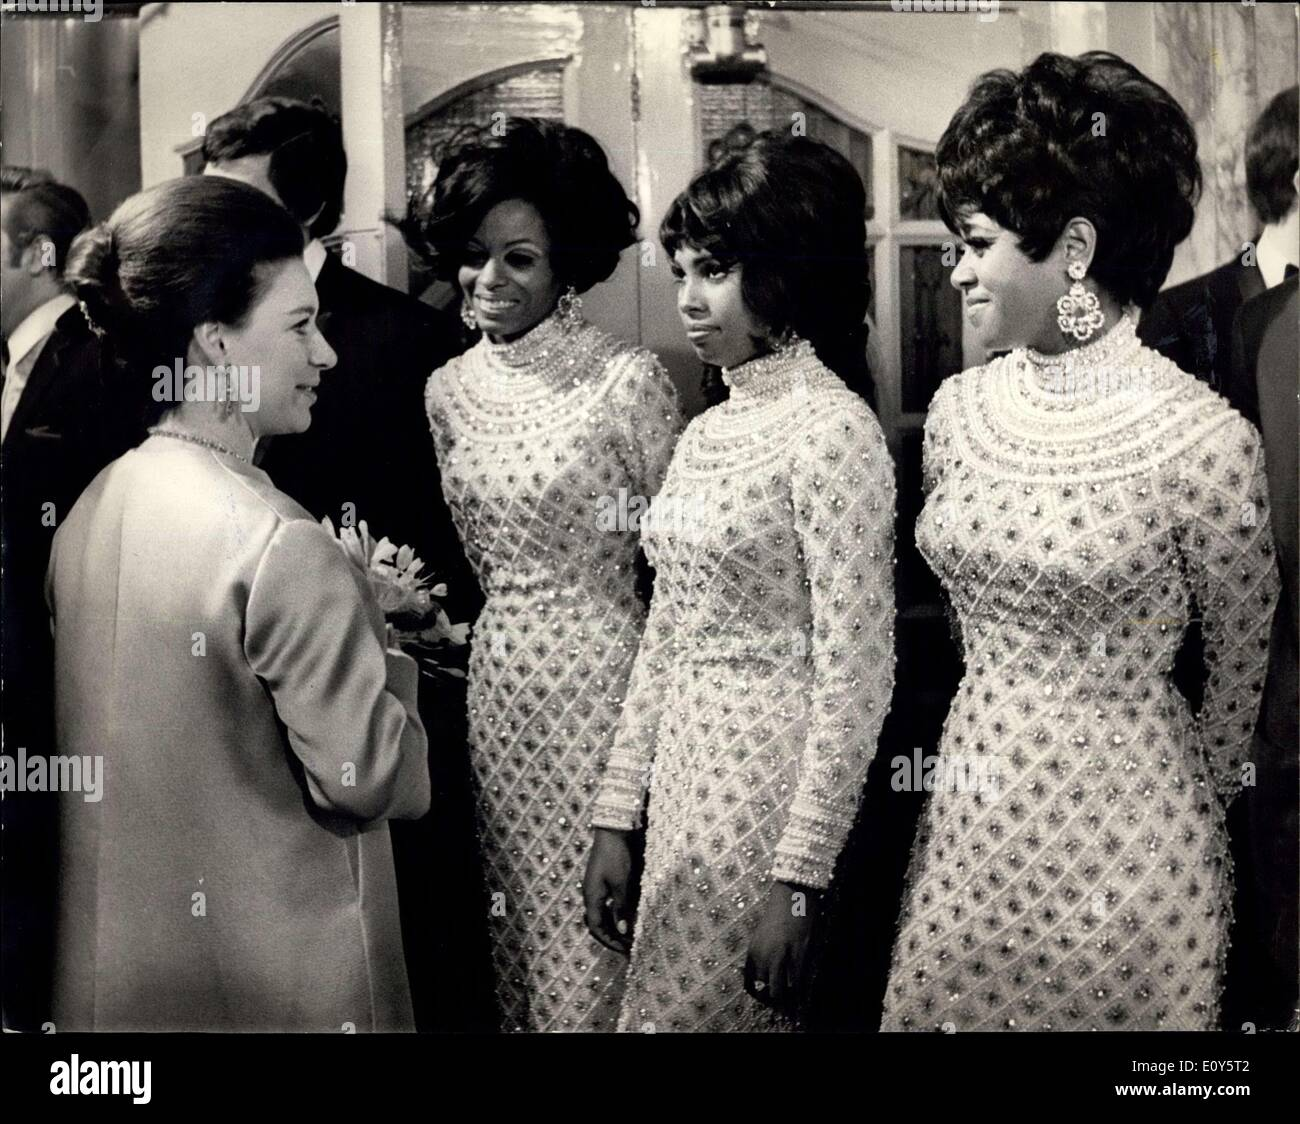 Nov. 18, 1968 - Royals attend the Royal Variety Performances at the London Palladium : Queen Elisabeth ,the queen Mother, was accompanied by Princess Anne, princes Charles, Princess Margaret, and her husband, Lord snowdon, when they attended the Royal Variety Performance at the London Palladium this evening in aid of the Variety Artistes, Beelent Fund. Photo shows Princess Margaret seen in conversation with the Suprems pop group after the show. - Stock Image